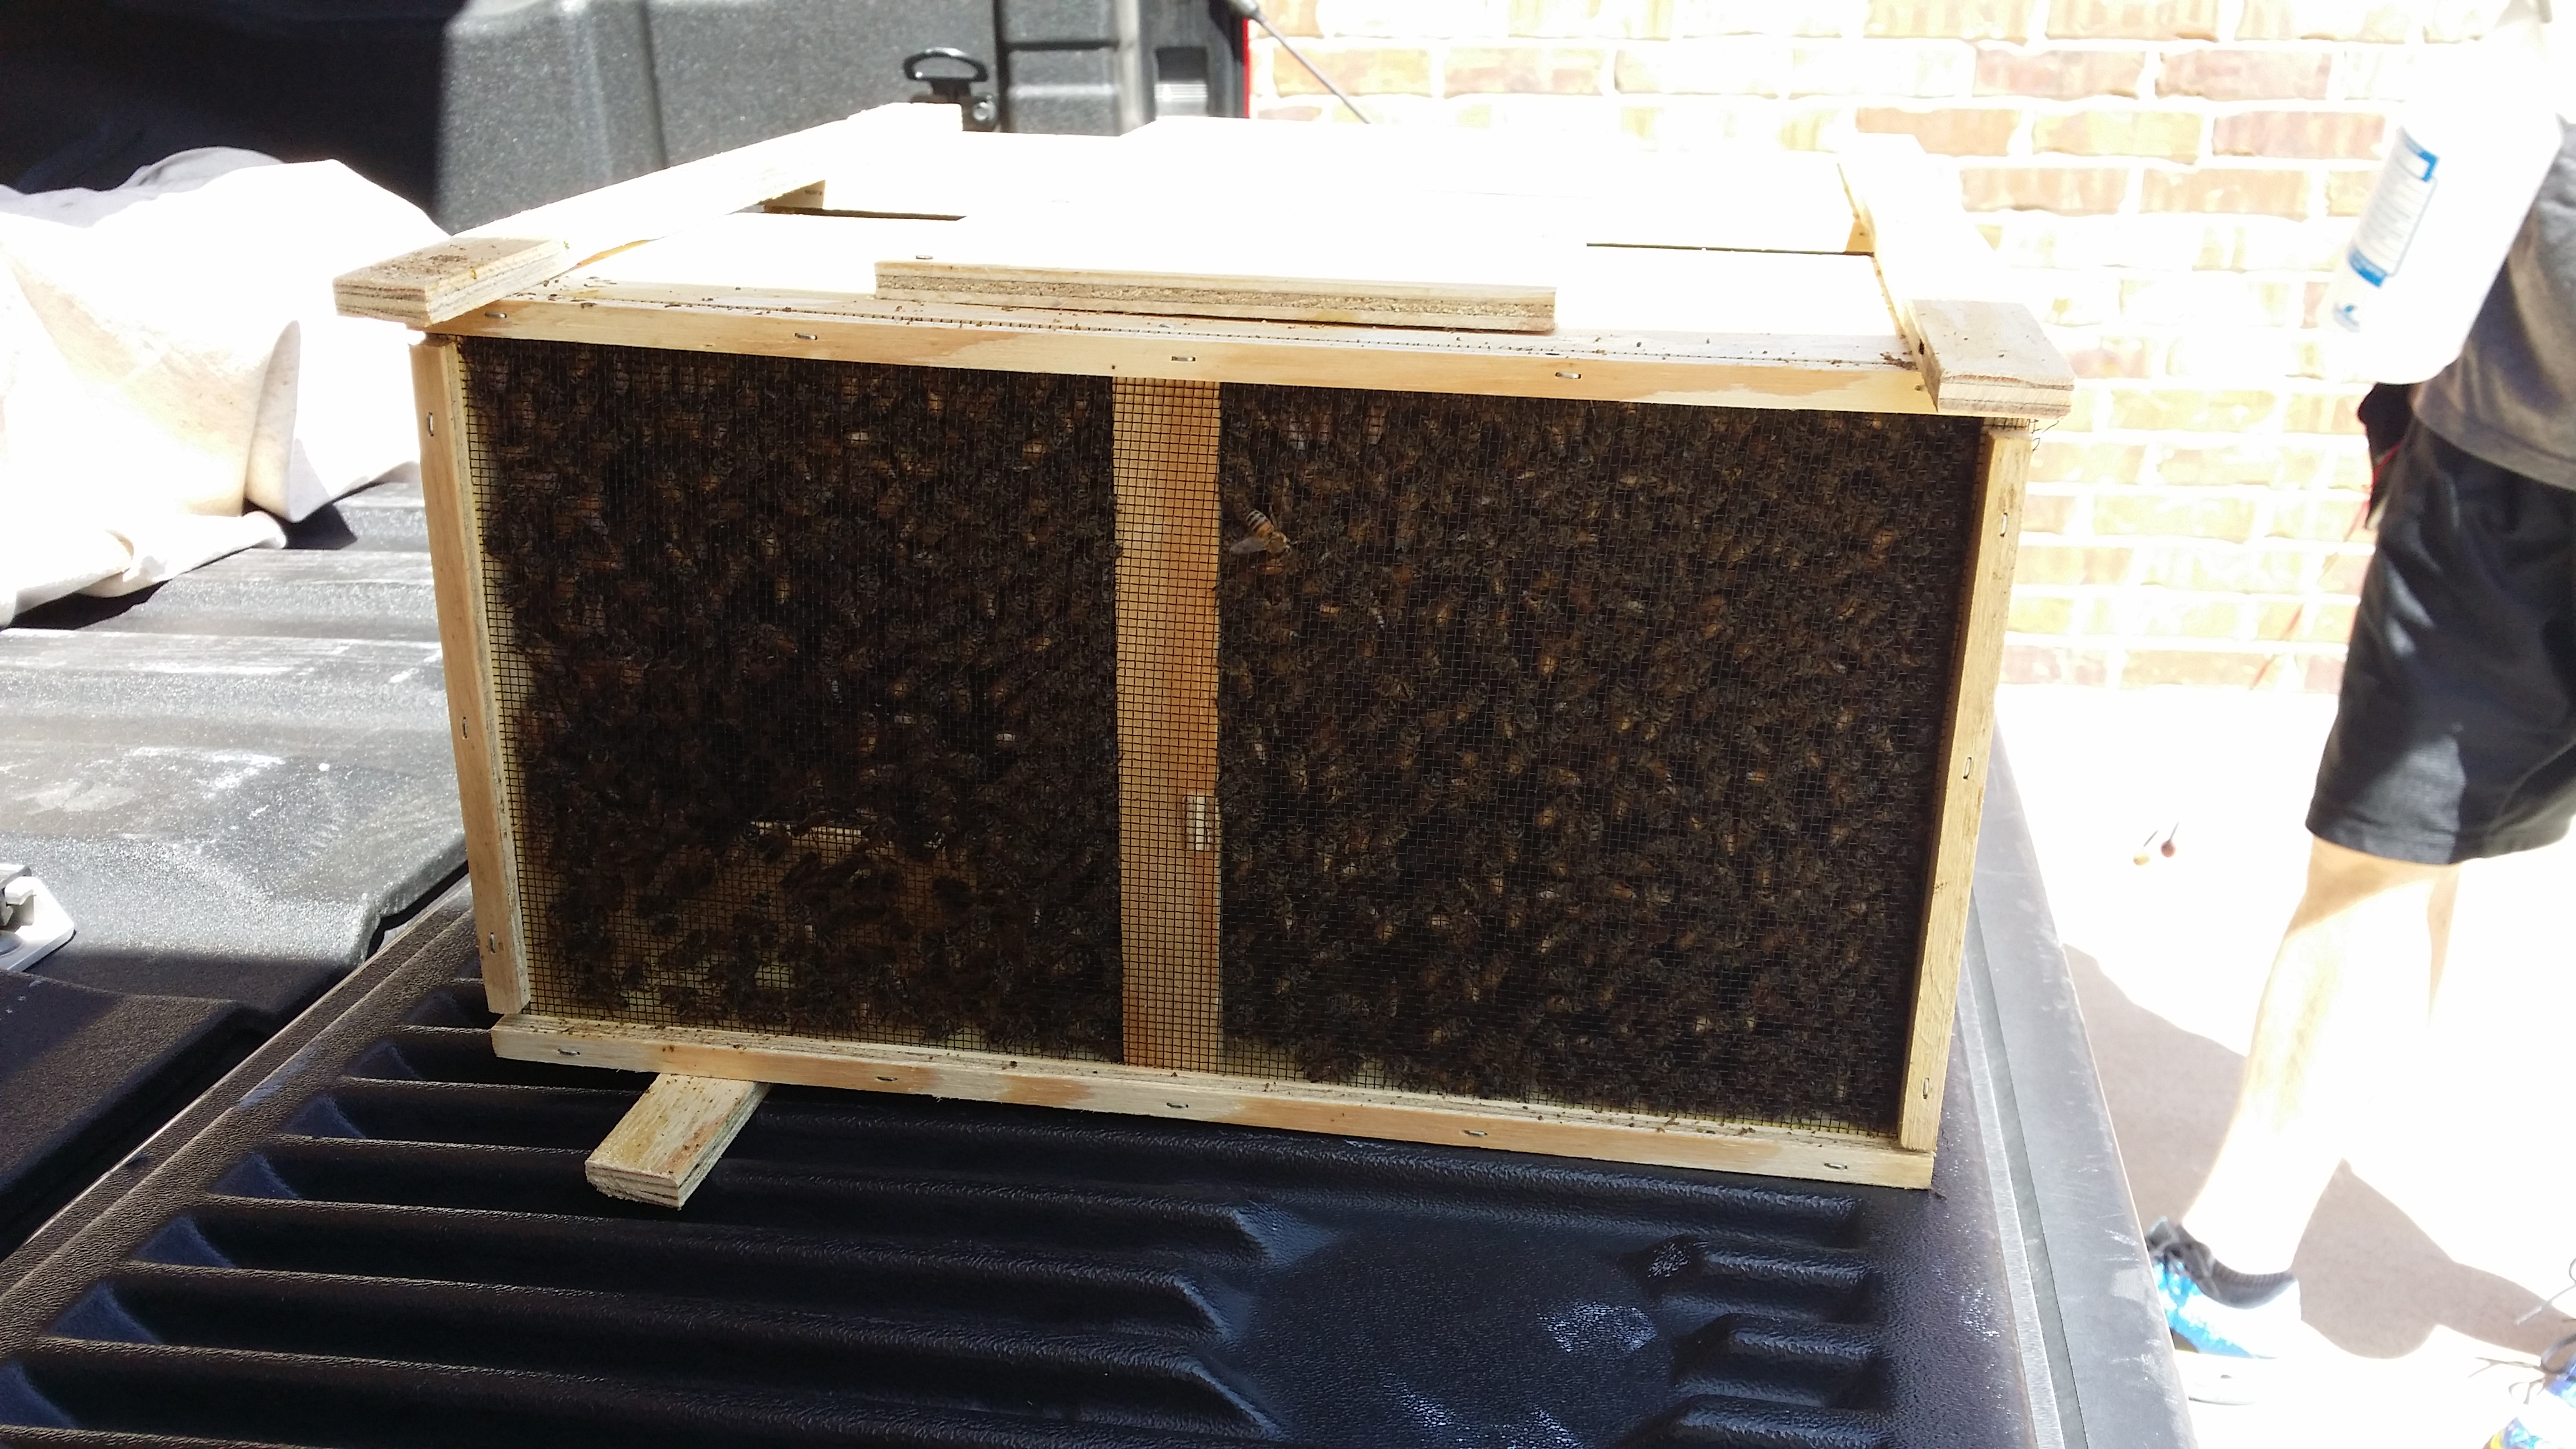 top feeders a hive forblog feeder bees s feeding day in organics bar ferry bee